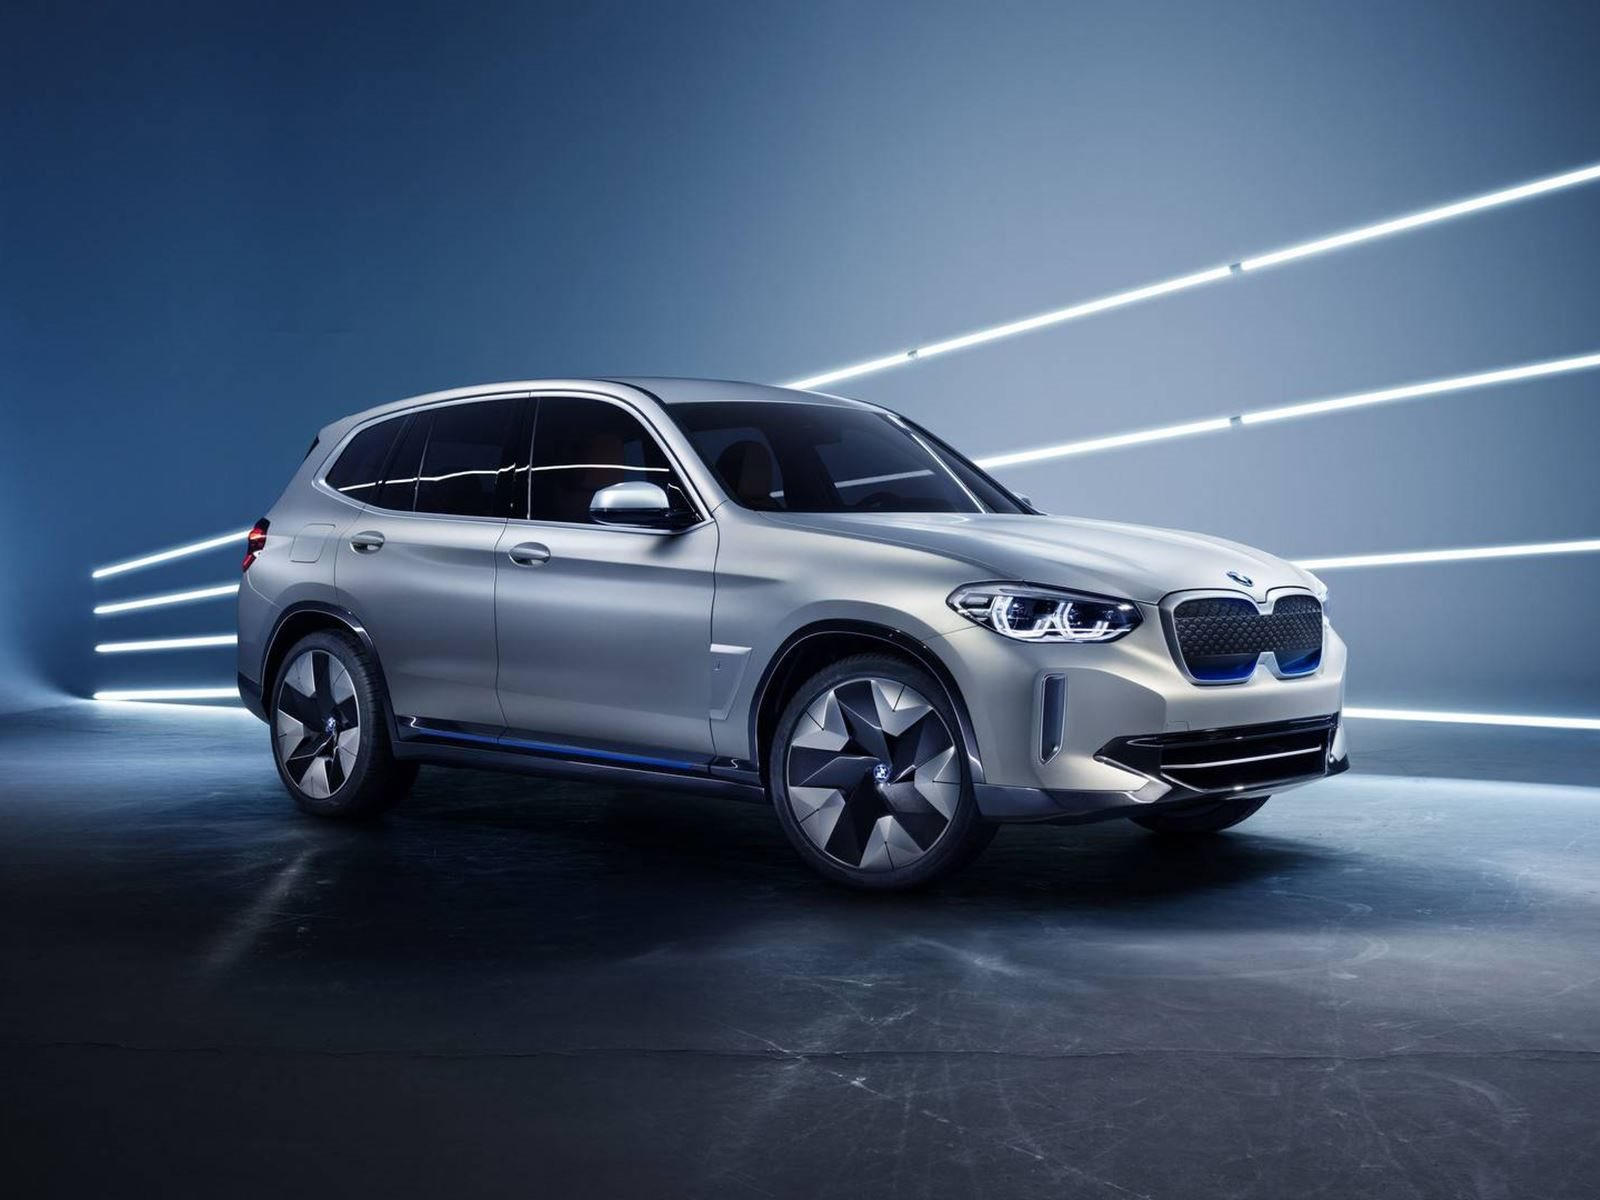 Bmw X3 Plug In Hybrid Will Have Hot Hatch Levels Of Power Carbuzz